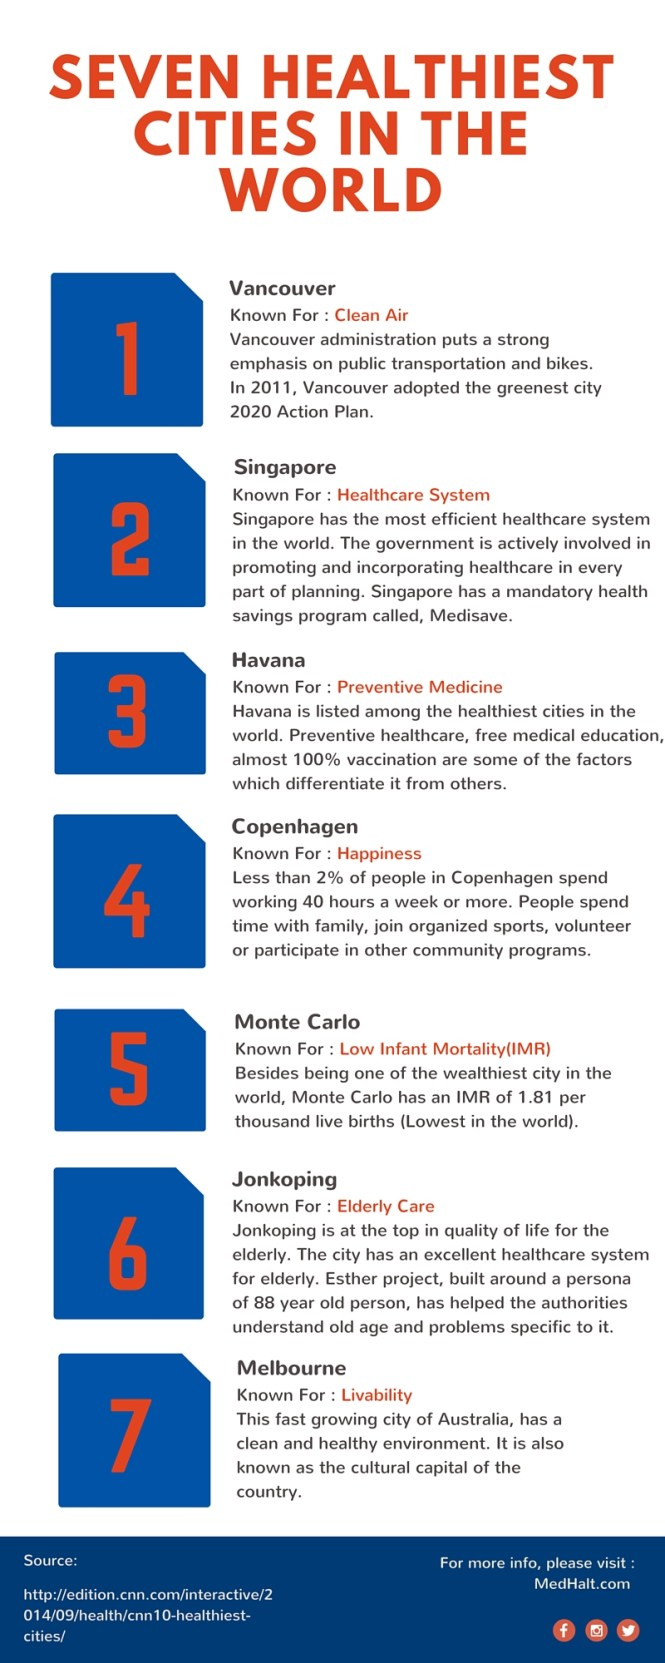 Seven Healthiest Cities In The World